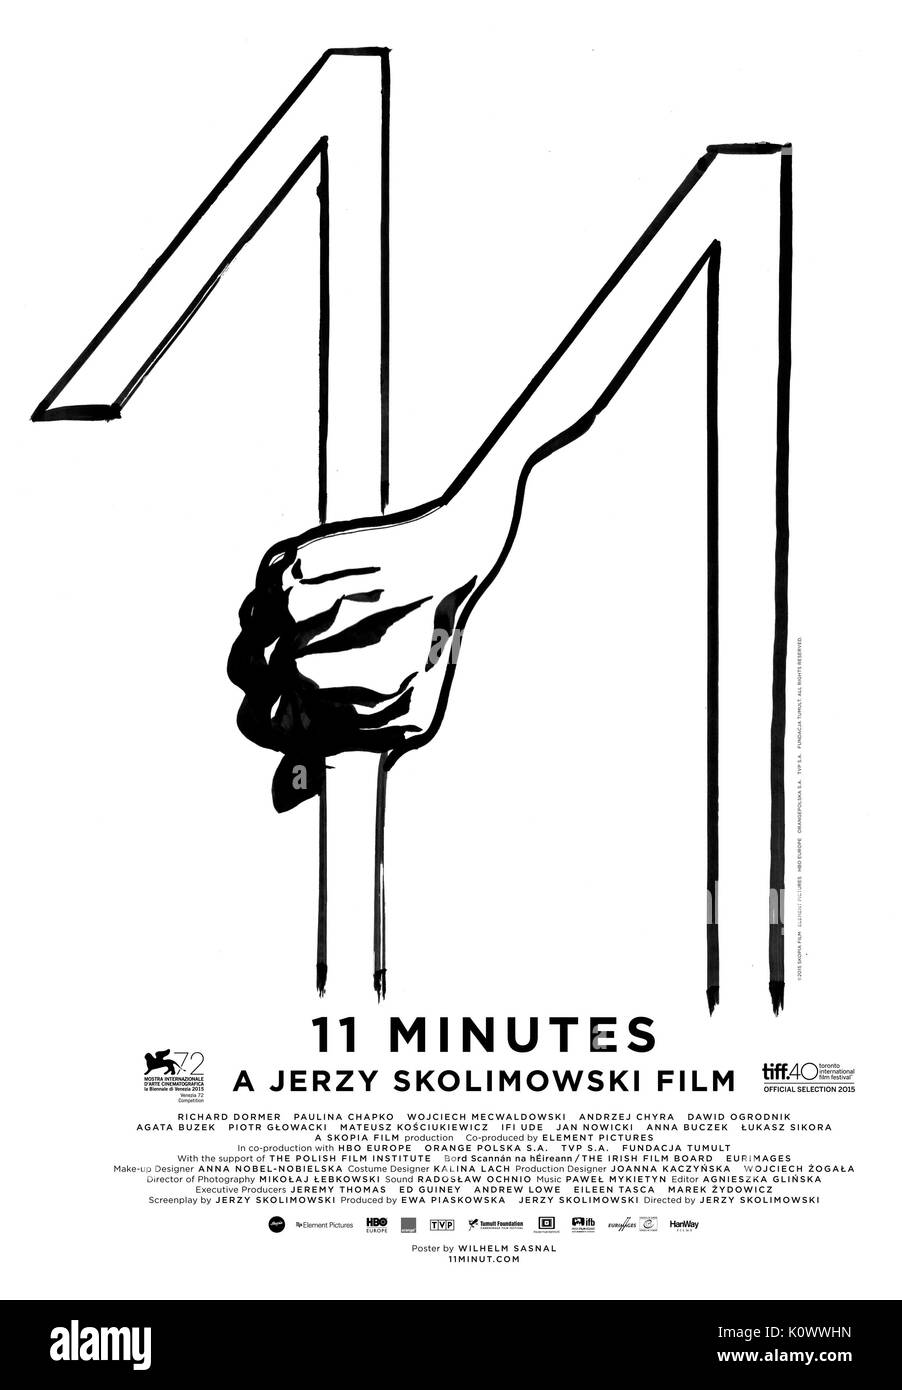 MOVIE POSTER 11 MINUTES; 11 MINUT (2015) - Stock Image